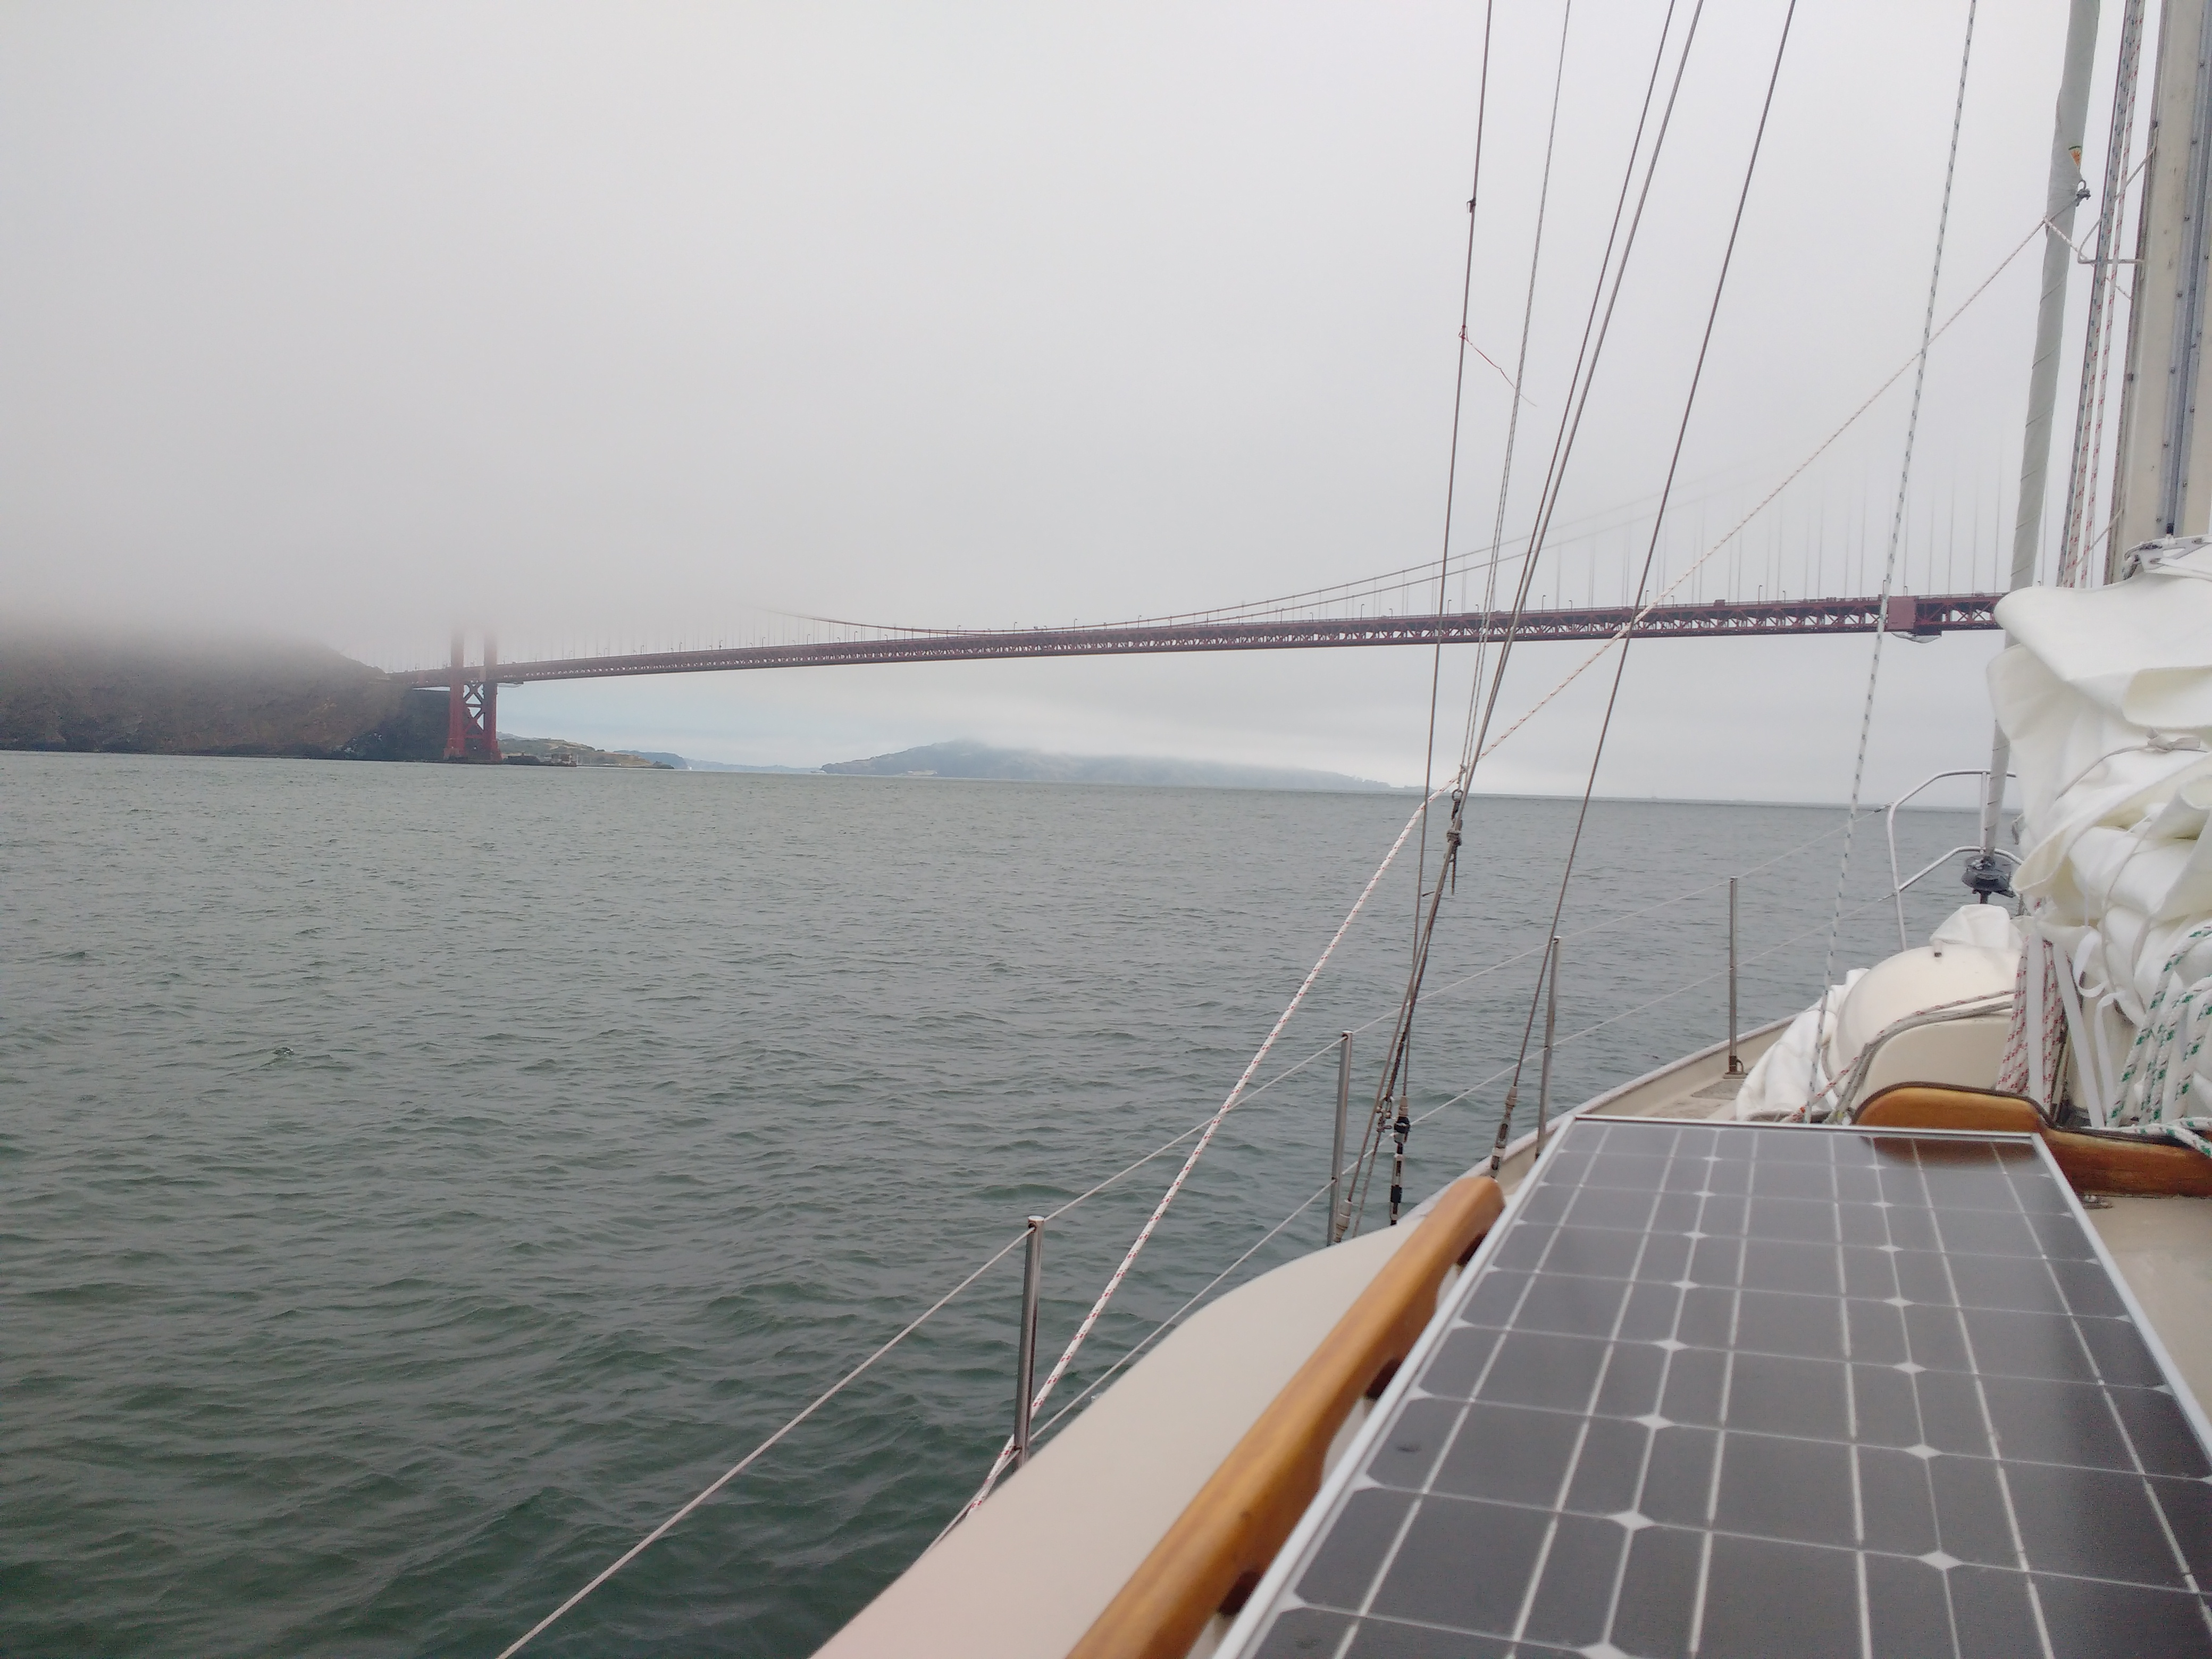 Approaching Golden Gate Bridge. Photo Ray Penson